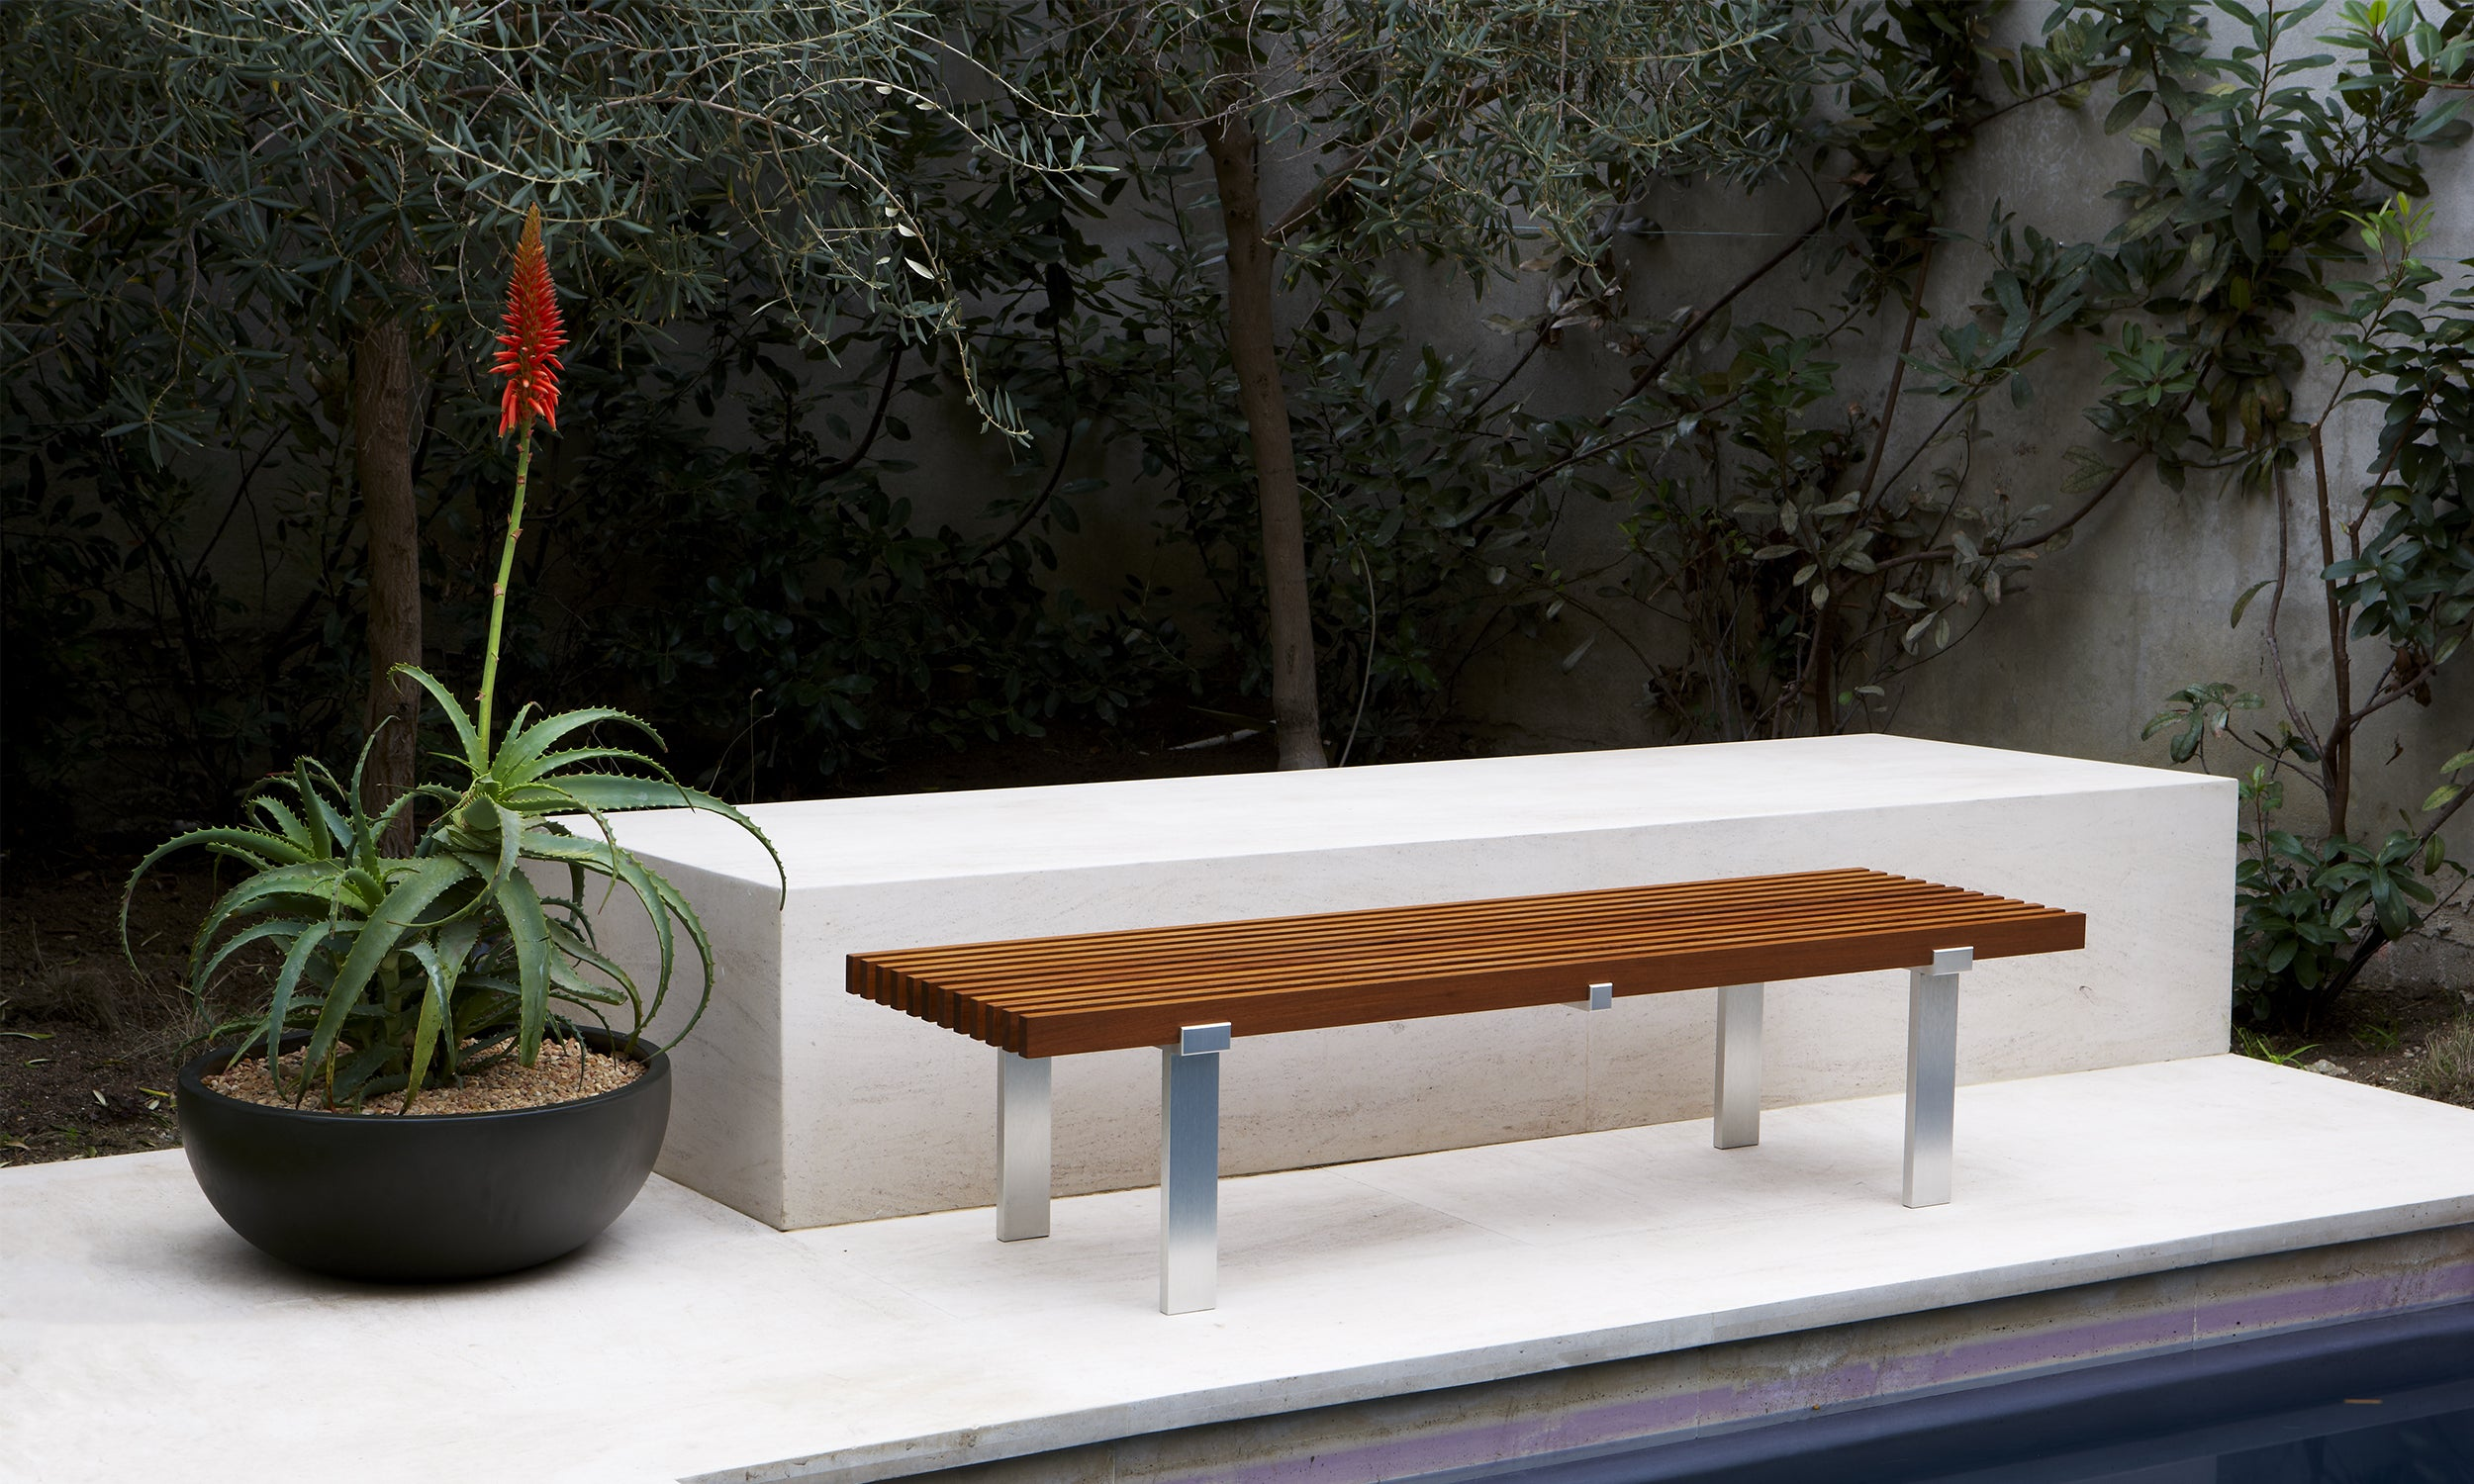 modernica wood case study museum bench